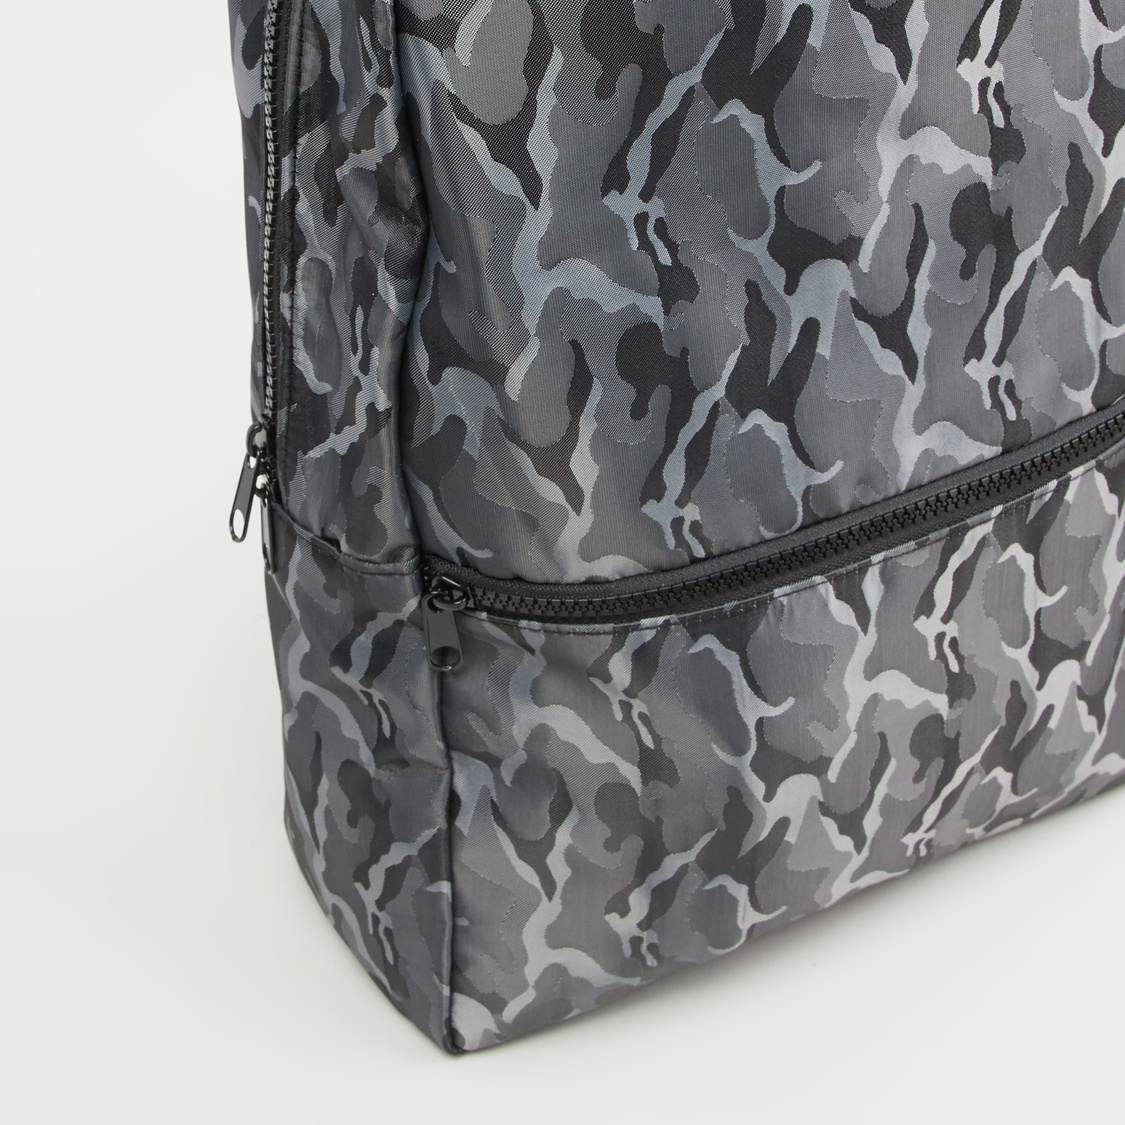 Printed Backpack with Adjustable Shoulder Straps and Top Handle